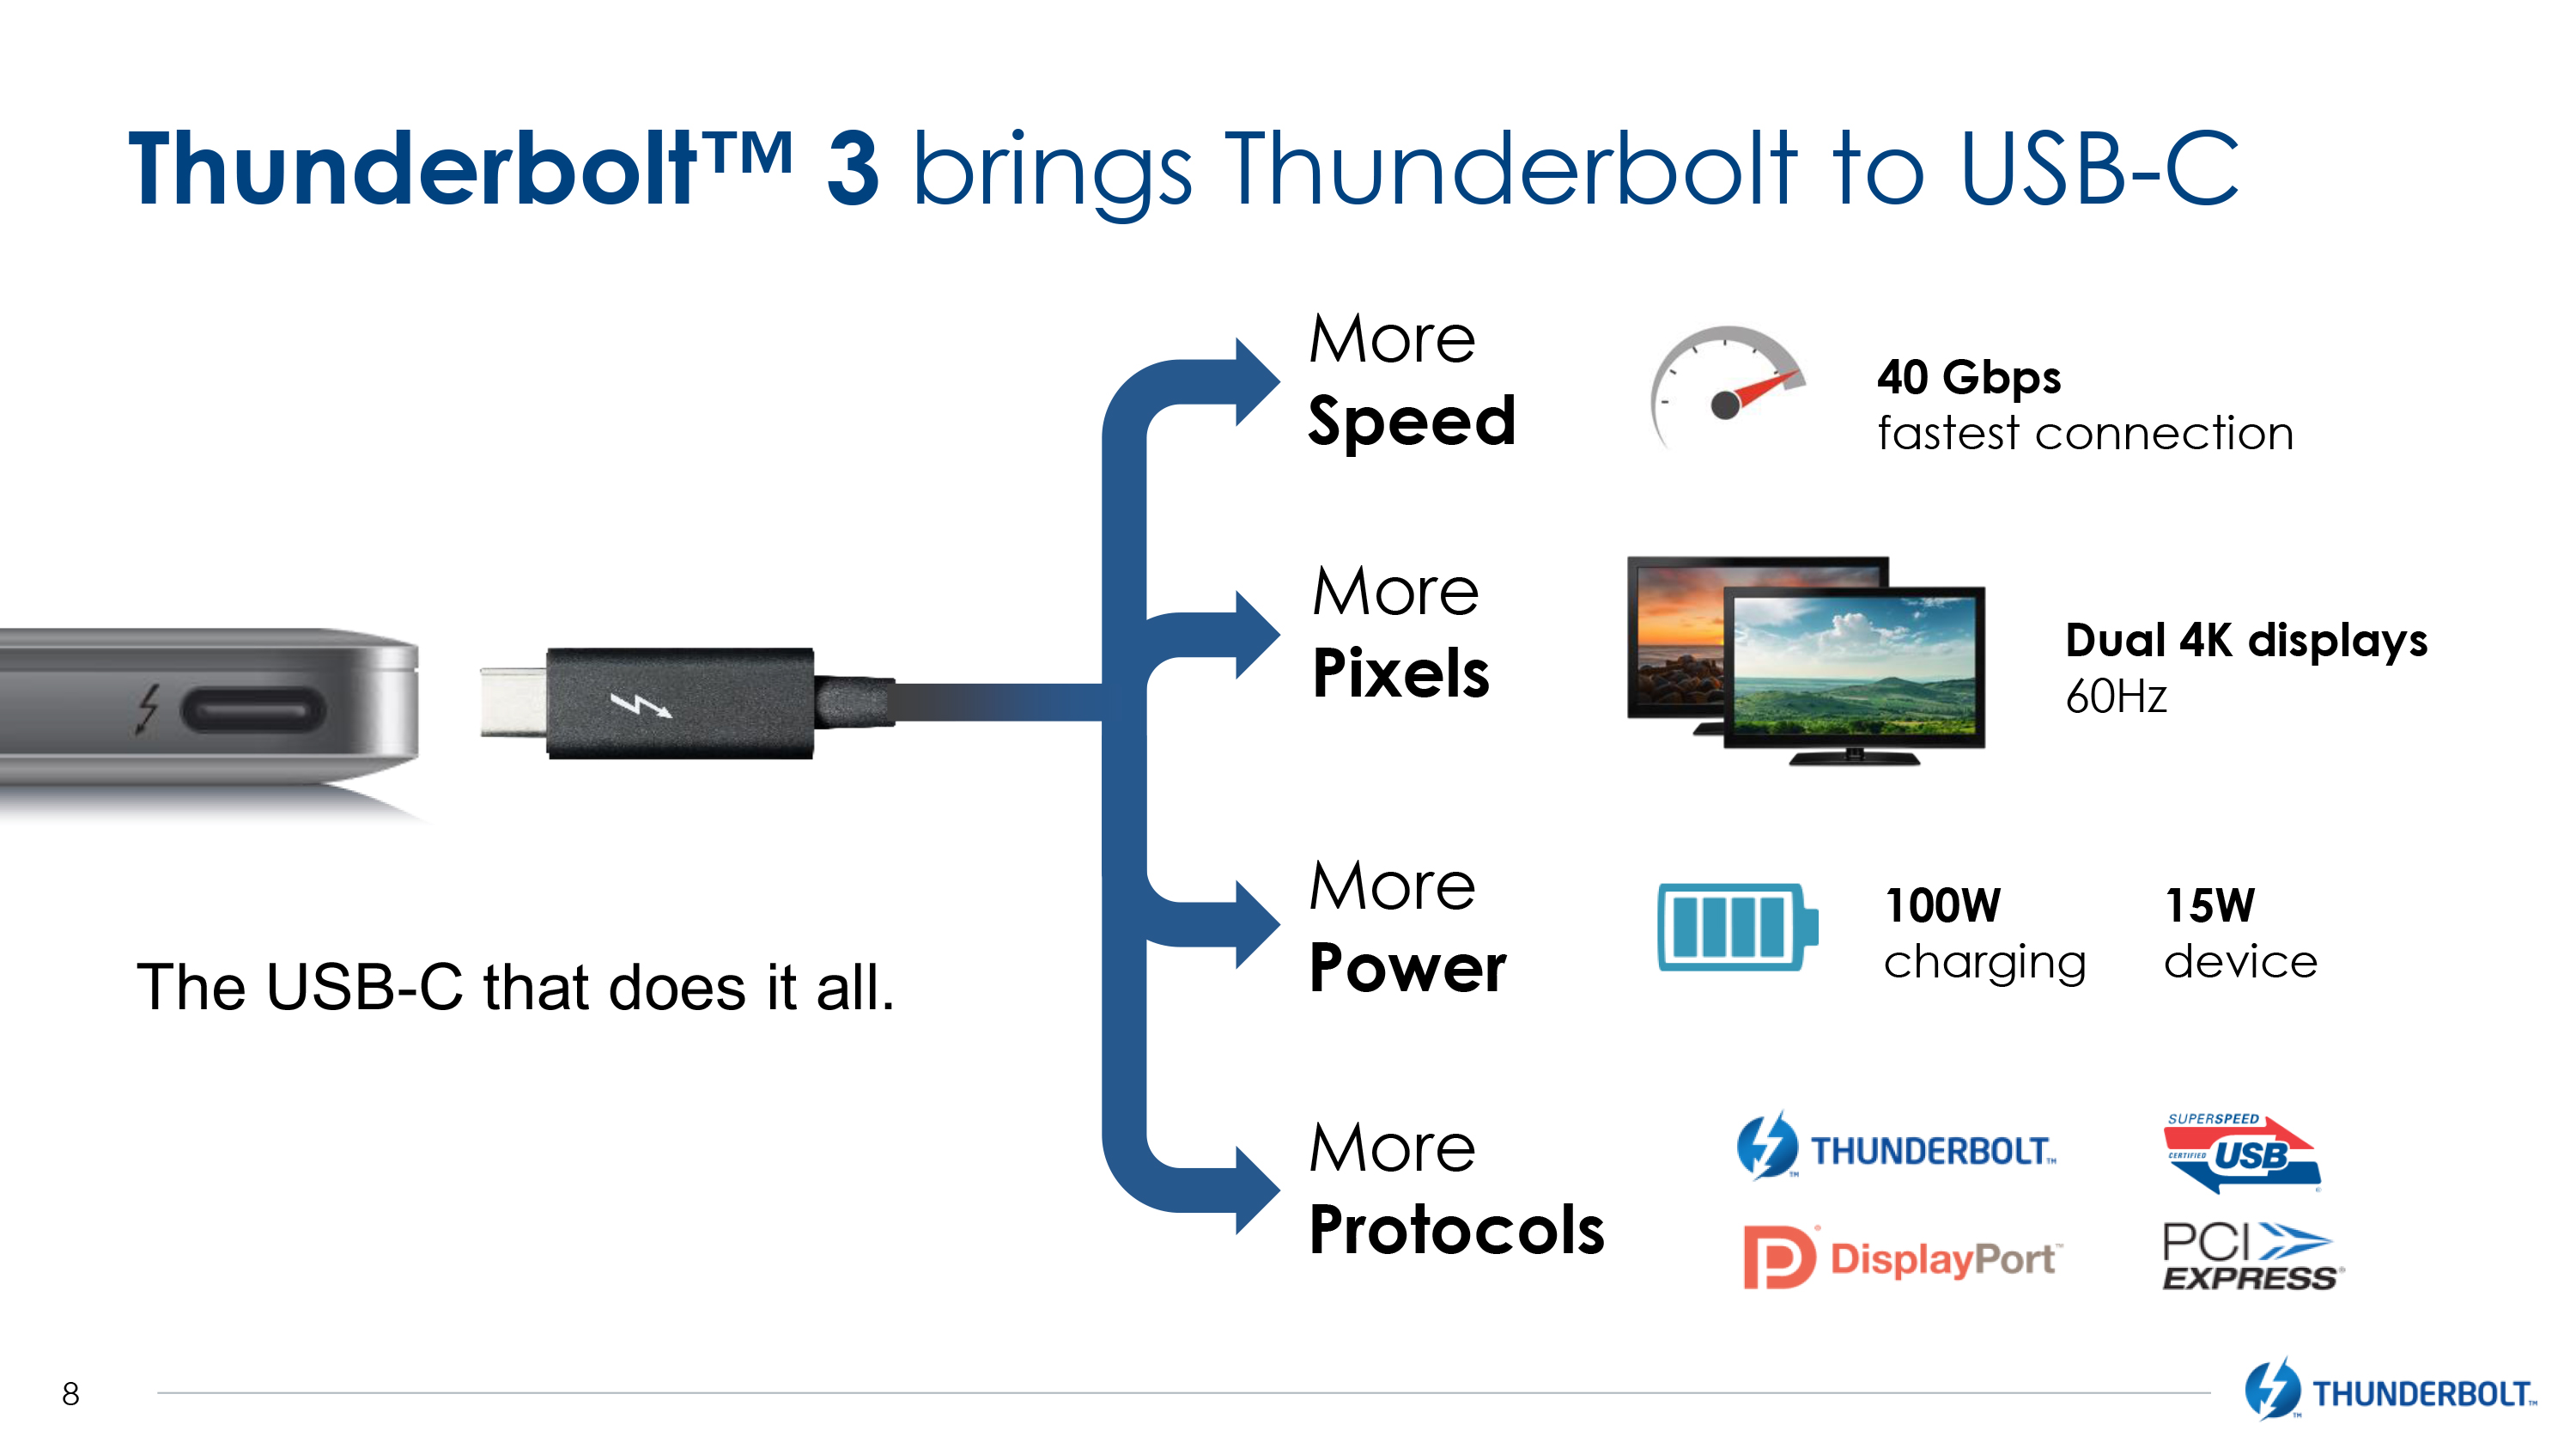 3 Thunderbolt Will Provide 40 Gbps Using Reversible USB-C Connector